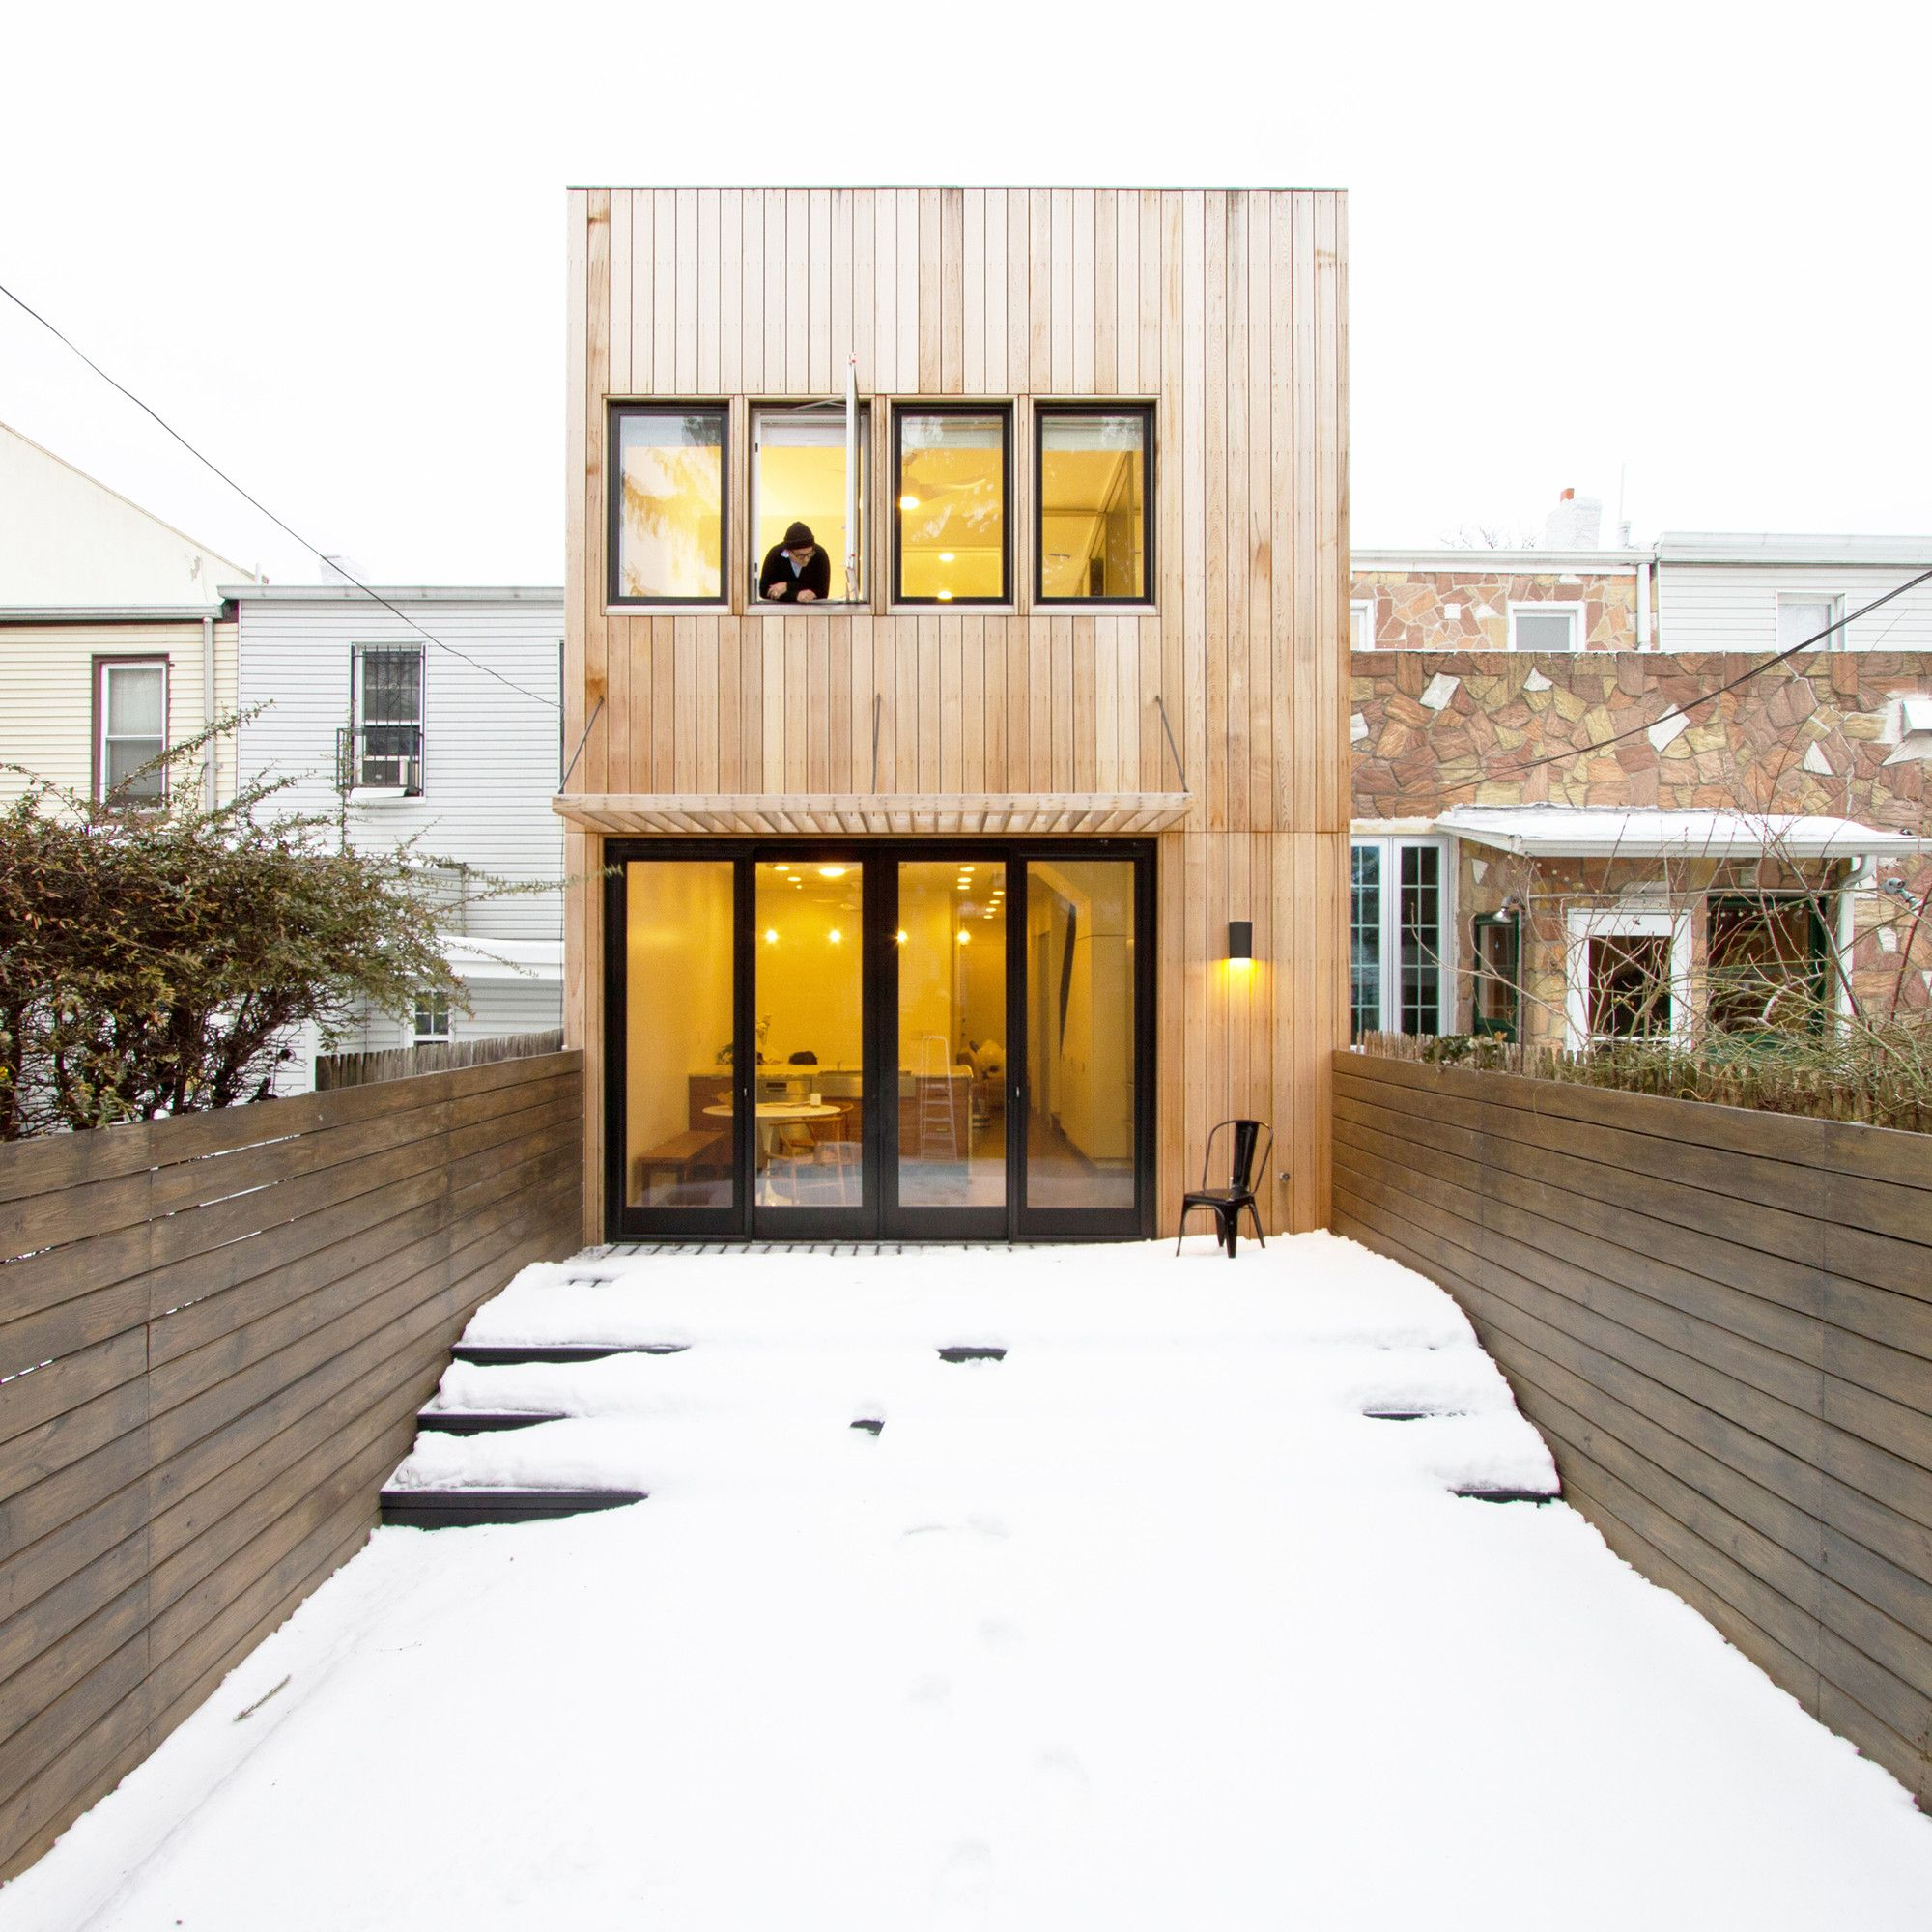 Gallery of Brooklyn Row House / Office of Architecture - 1